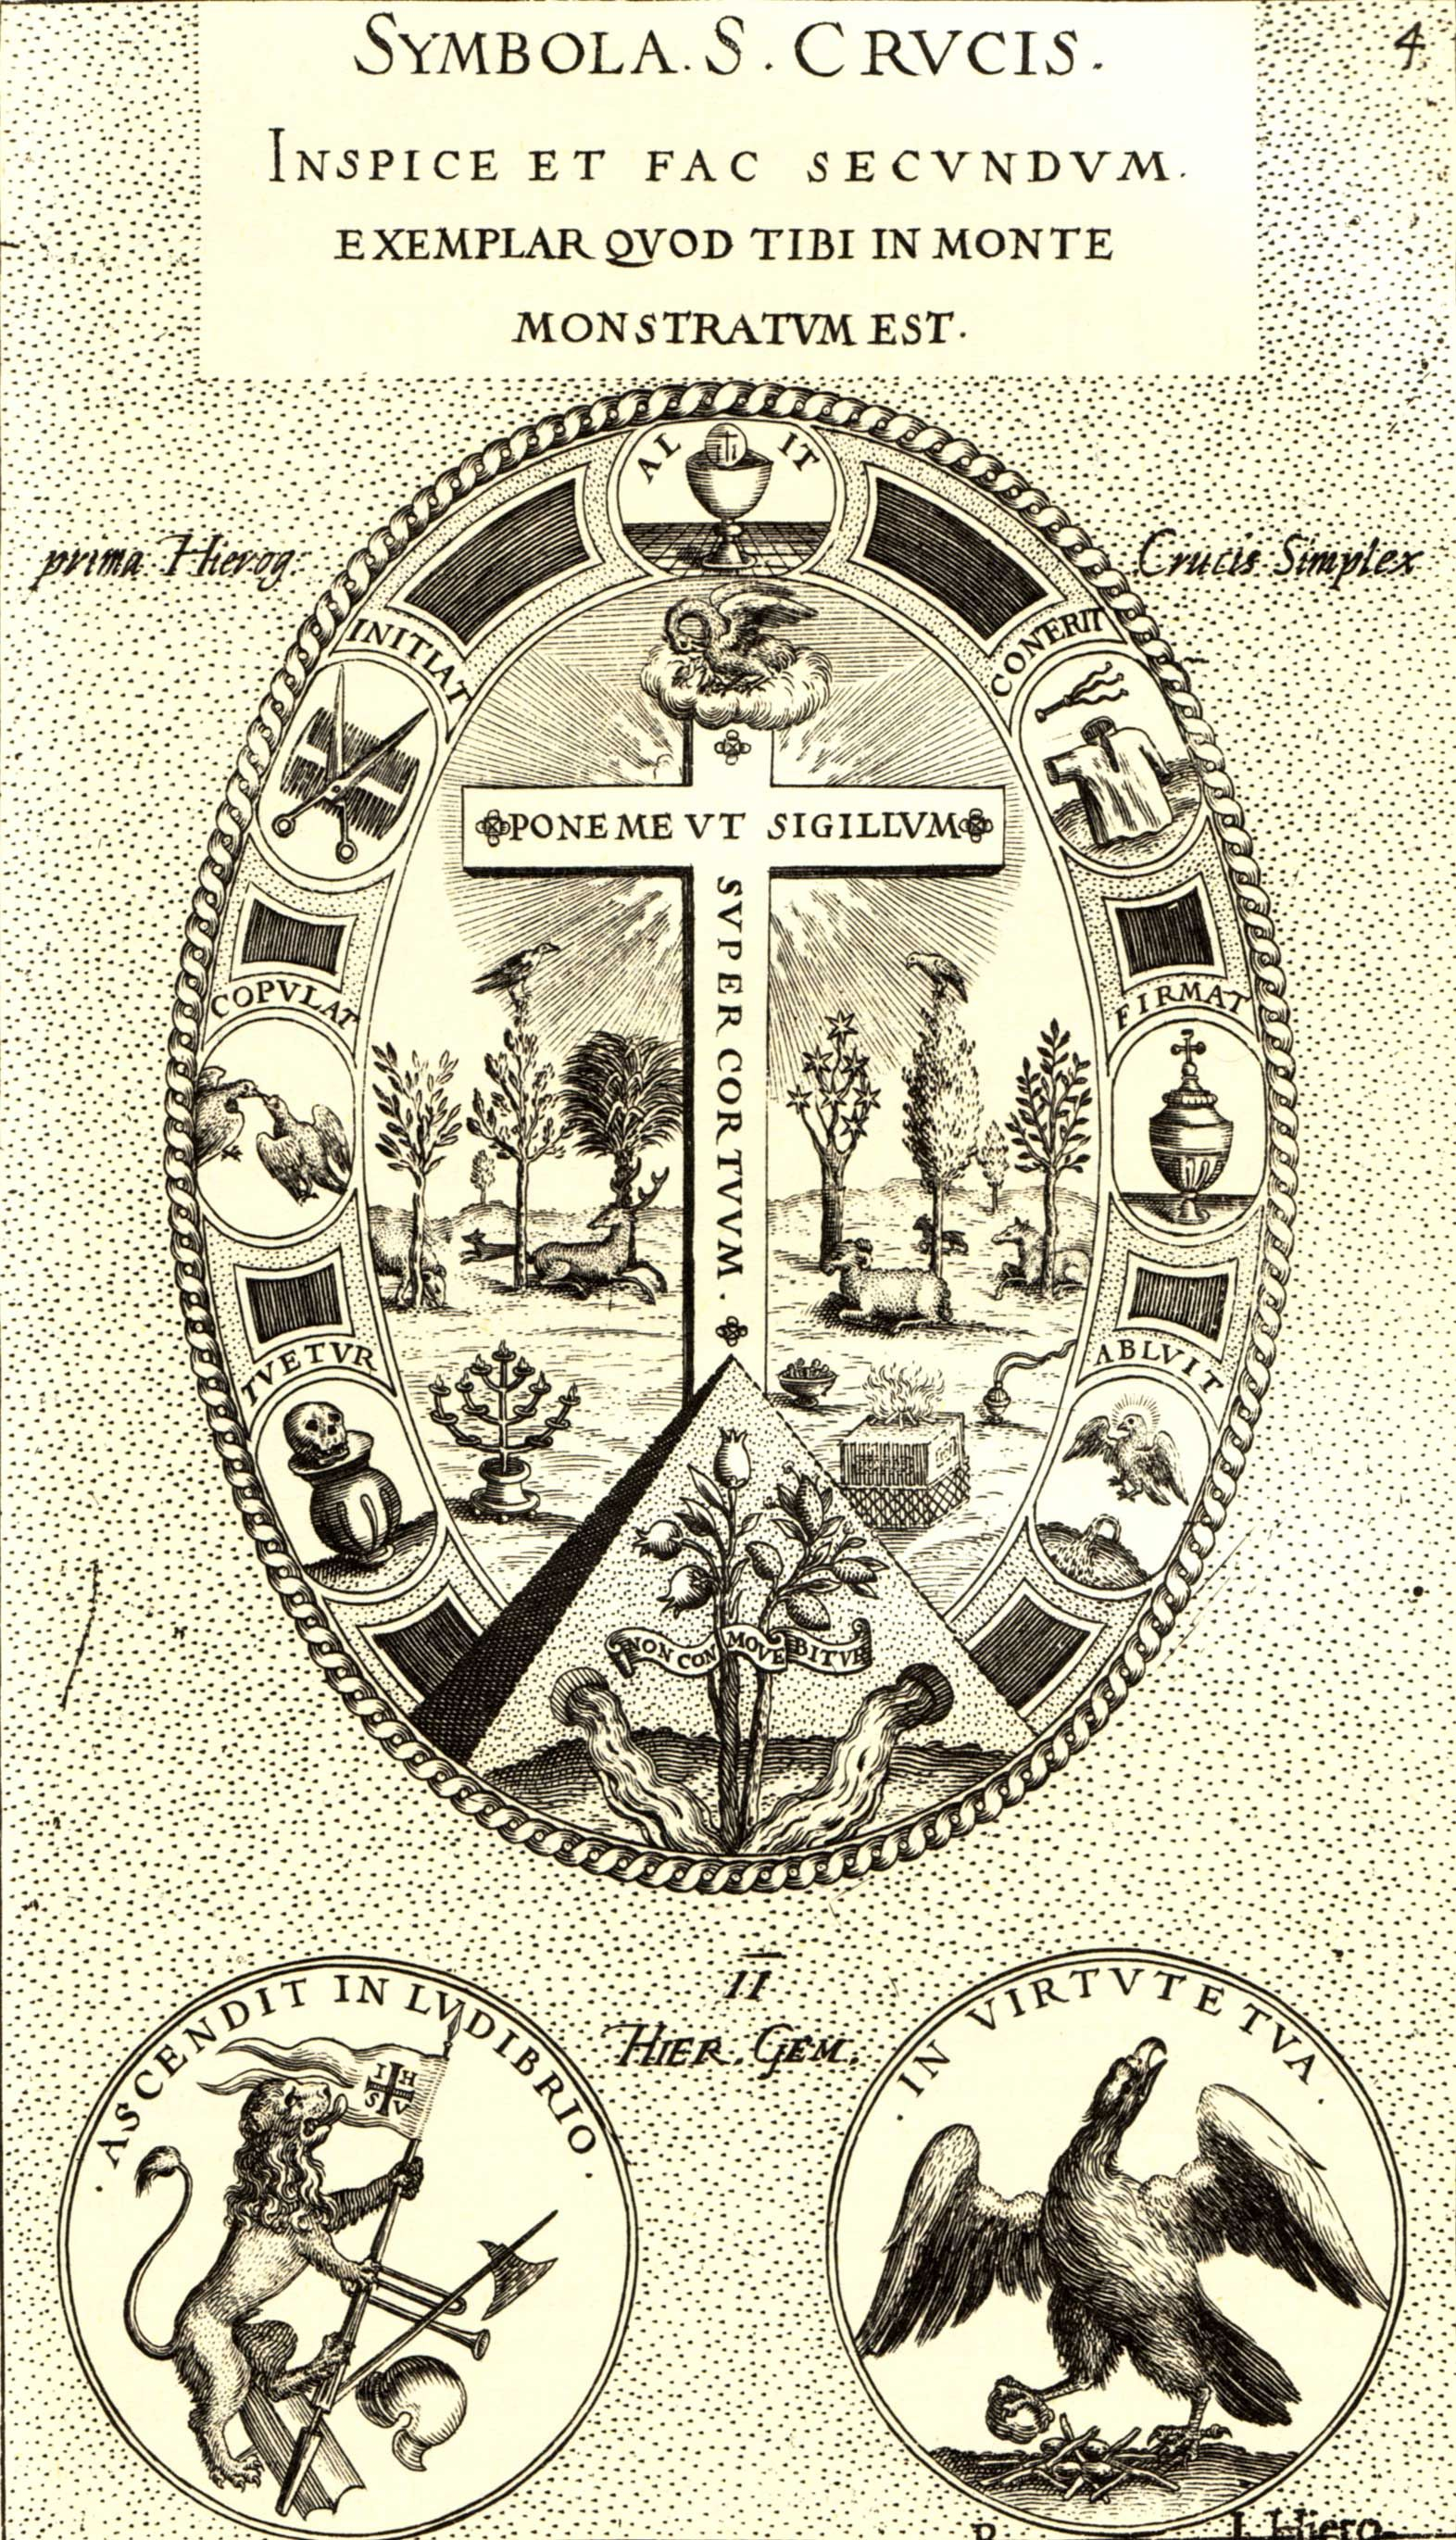 Pin by John Erickson on The Antient Hermetic Behmenist Order of Unknown  Elect Priests of the Temple of the Gold & Rosy Cross   Alchemy, Magick,  Occult